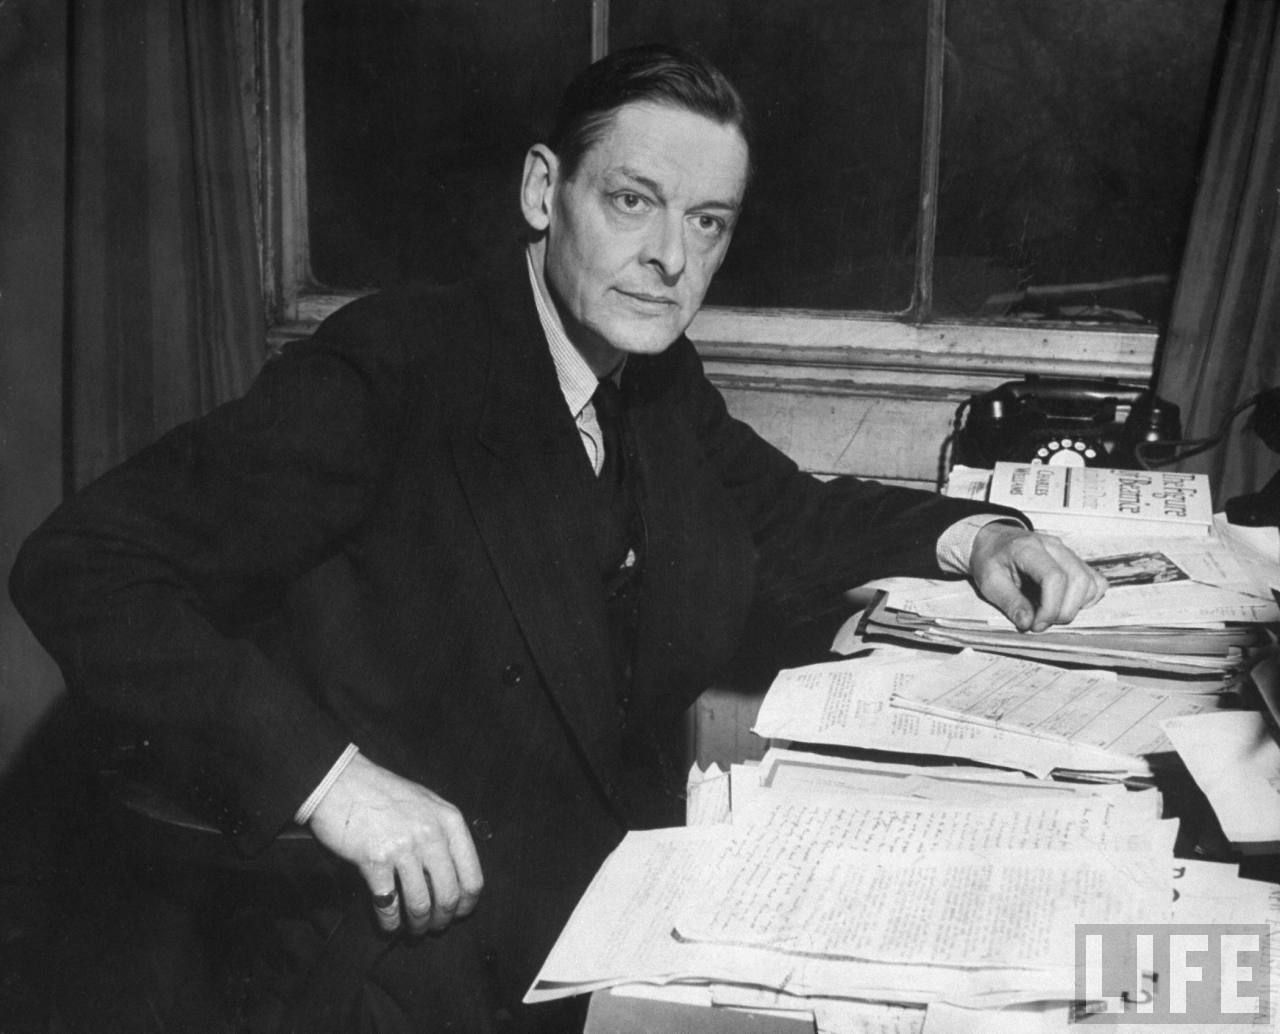 an introduction to the life and literature of thomas stearns eliot An introduction to t s eliot's life and work we could write a very short biography of t s eliot early life thomas stearns eliot was born on 26.